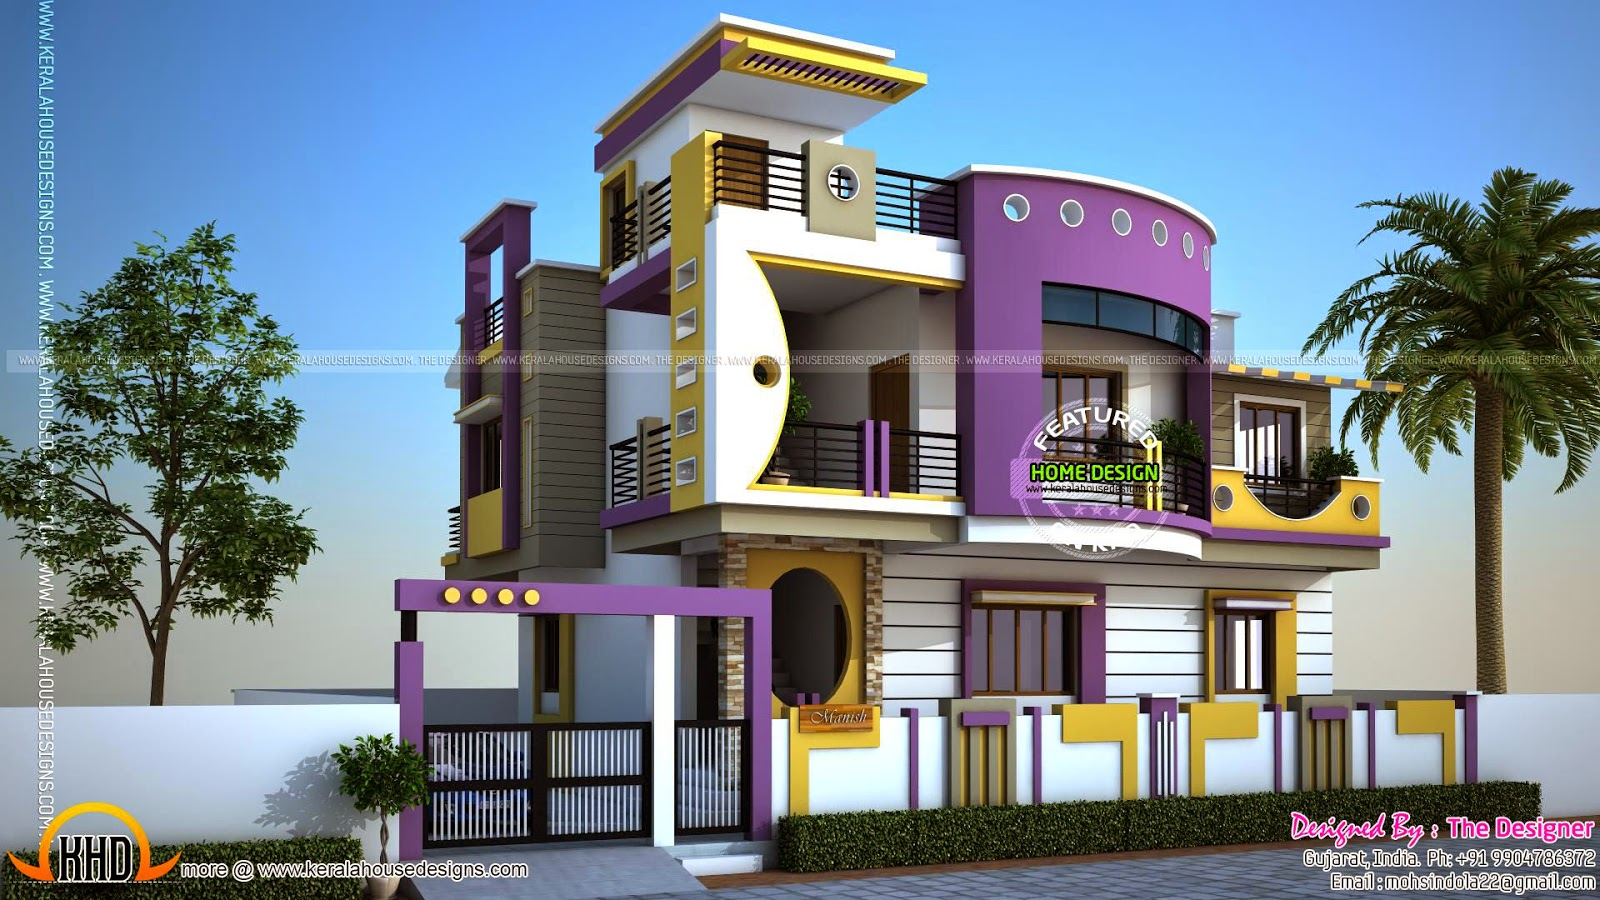 House exterior designs in contemporary style kerala home for House exterior design pictures